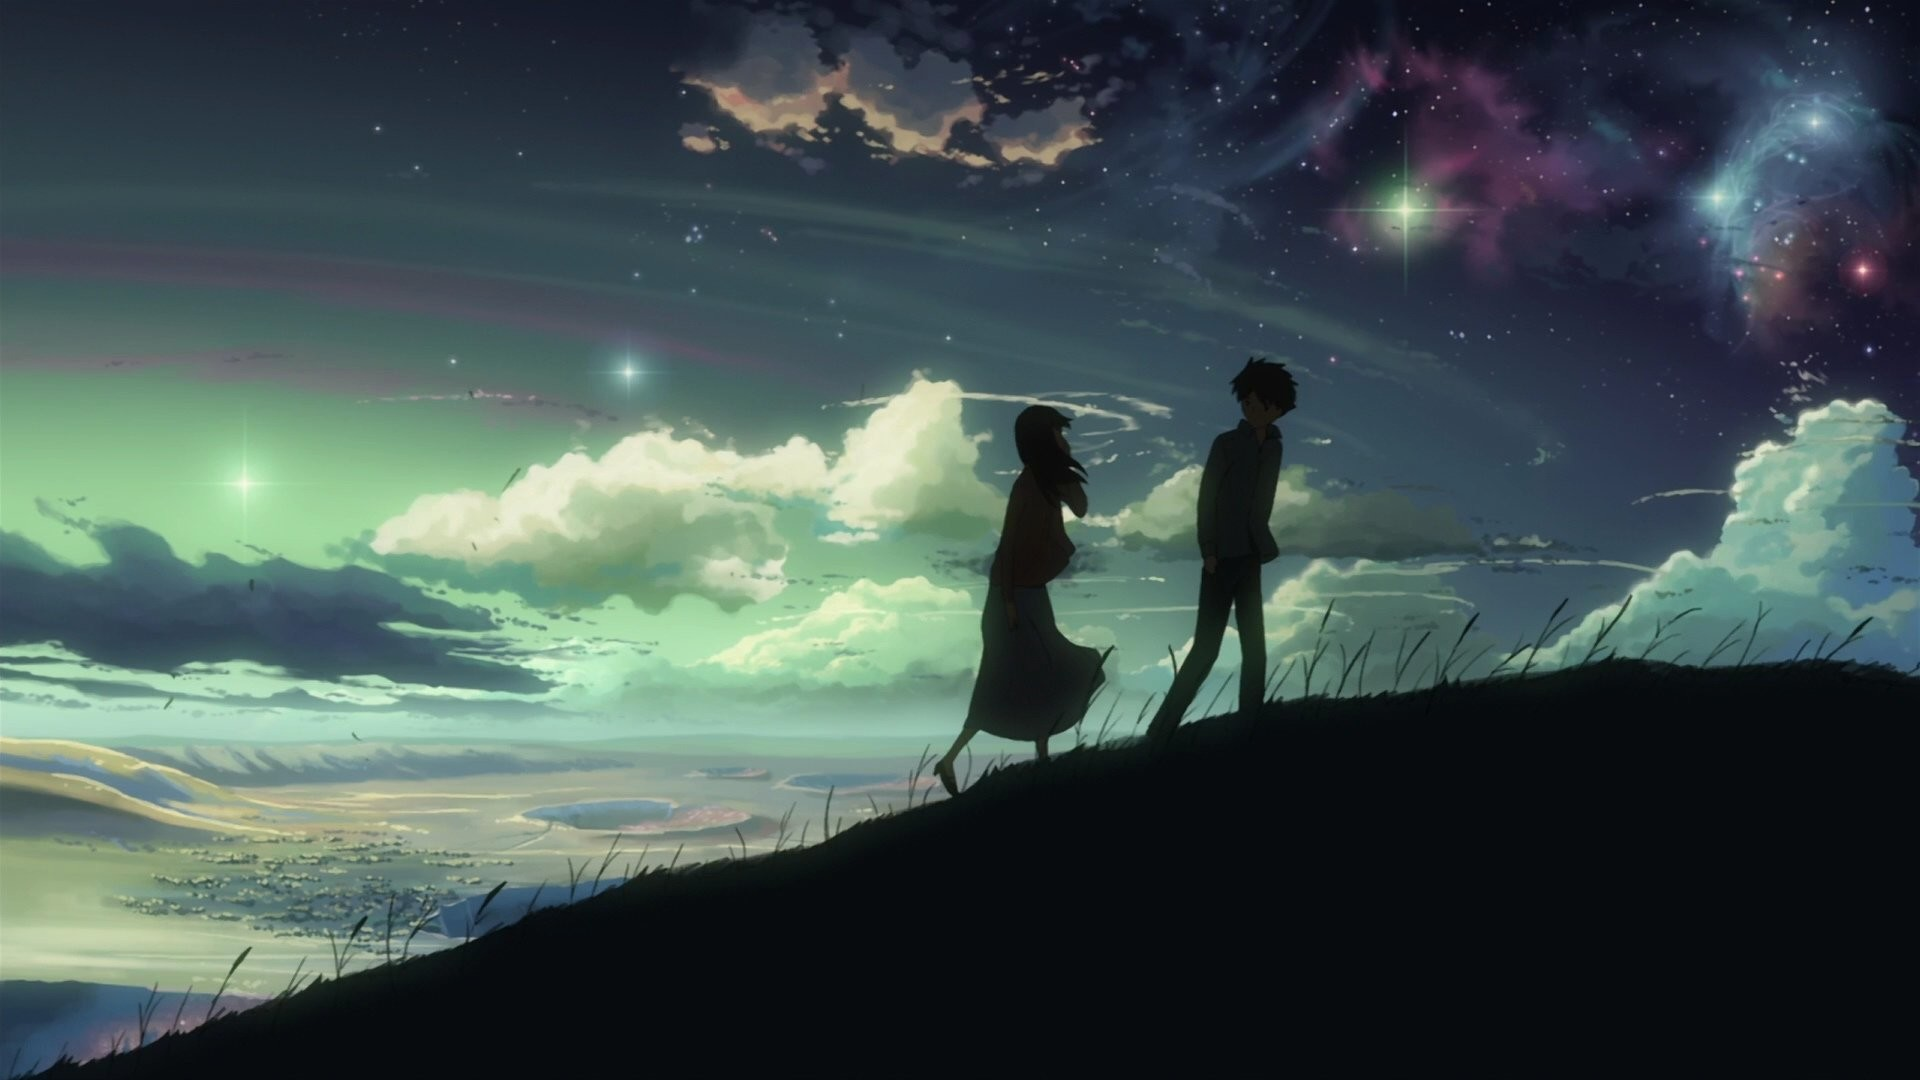 1920x1080 Anime - 5 Centimeters Per Second Akari Shinohara Takaki Touno Wallpaper